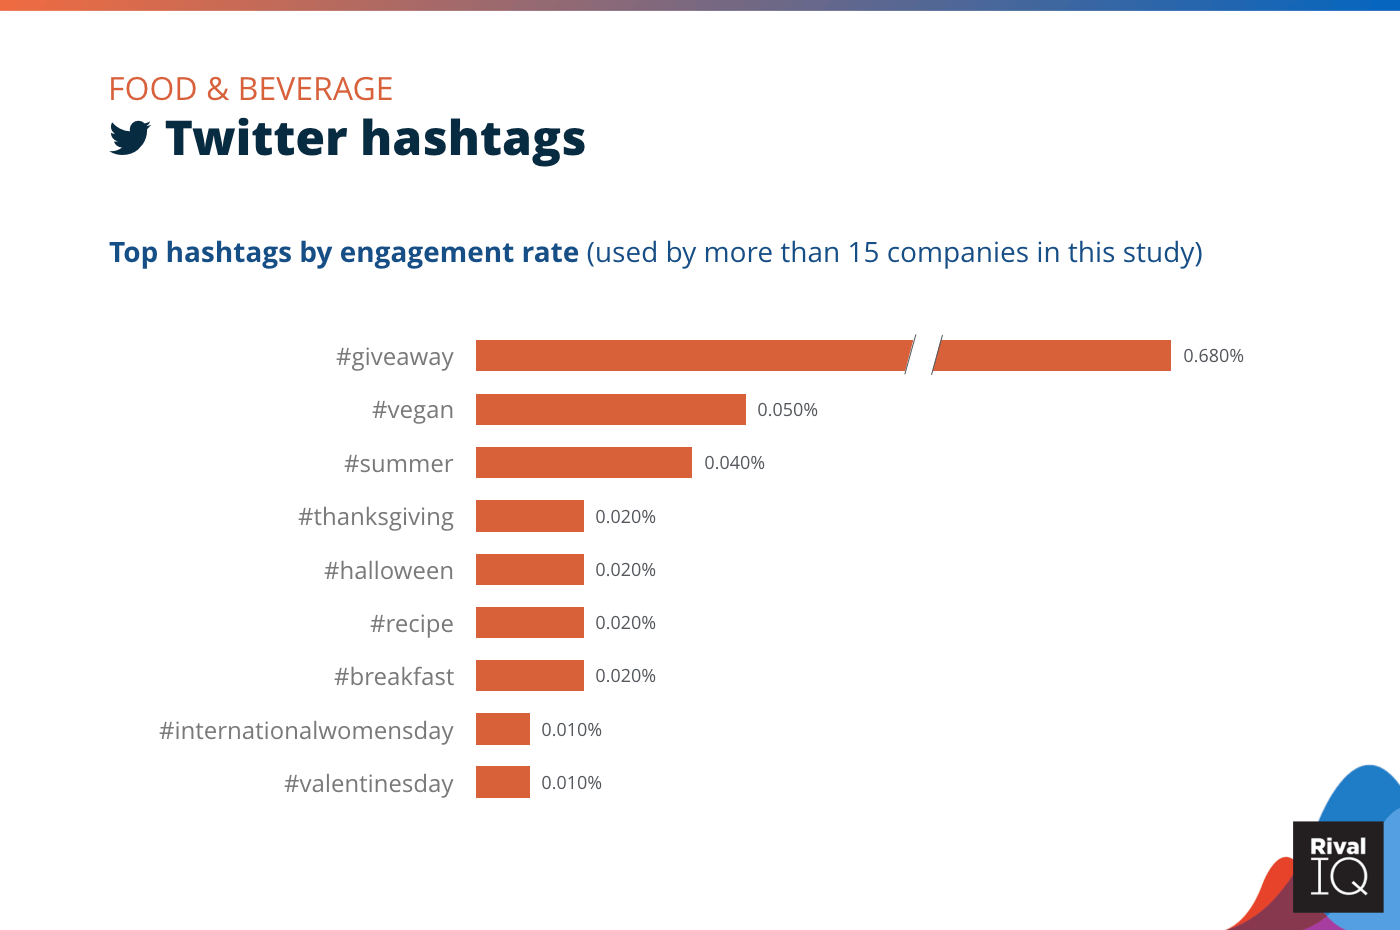 Chart of Top Twitter hashtags by engagement rate, Food & Beverage